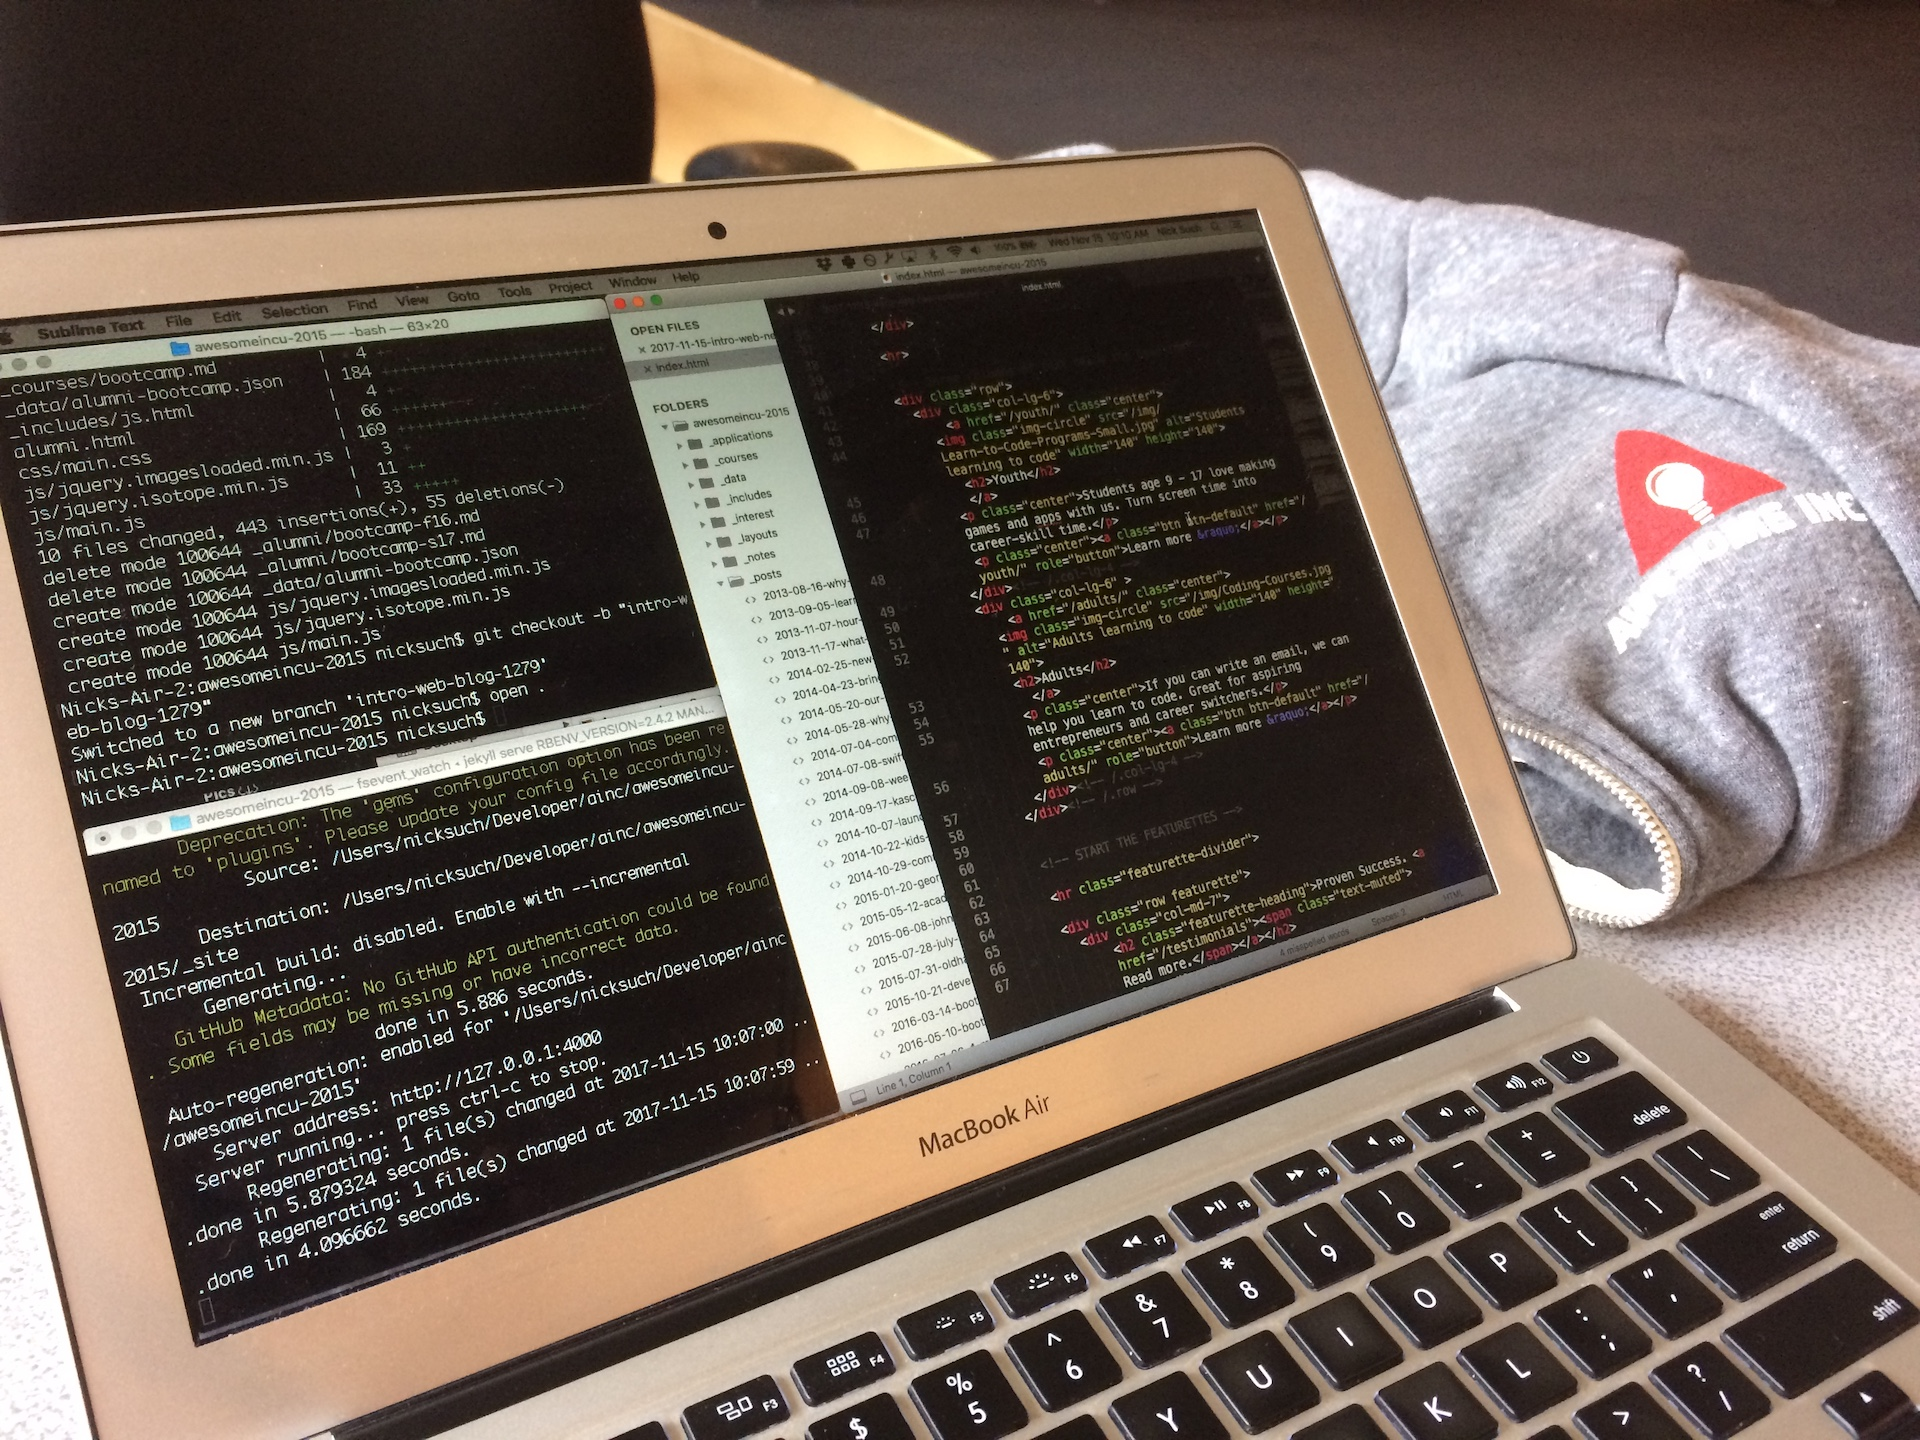 Laptop with terminal and text editor with HTML code